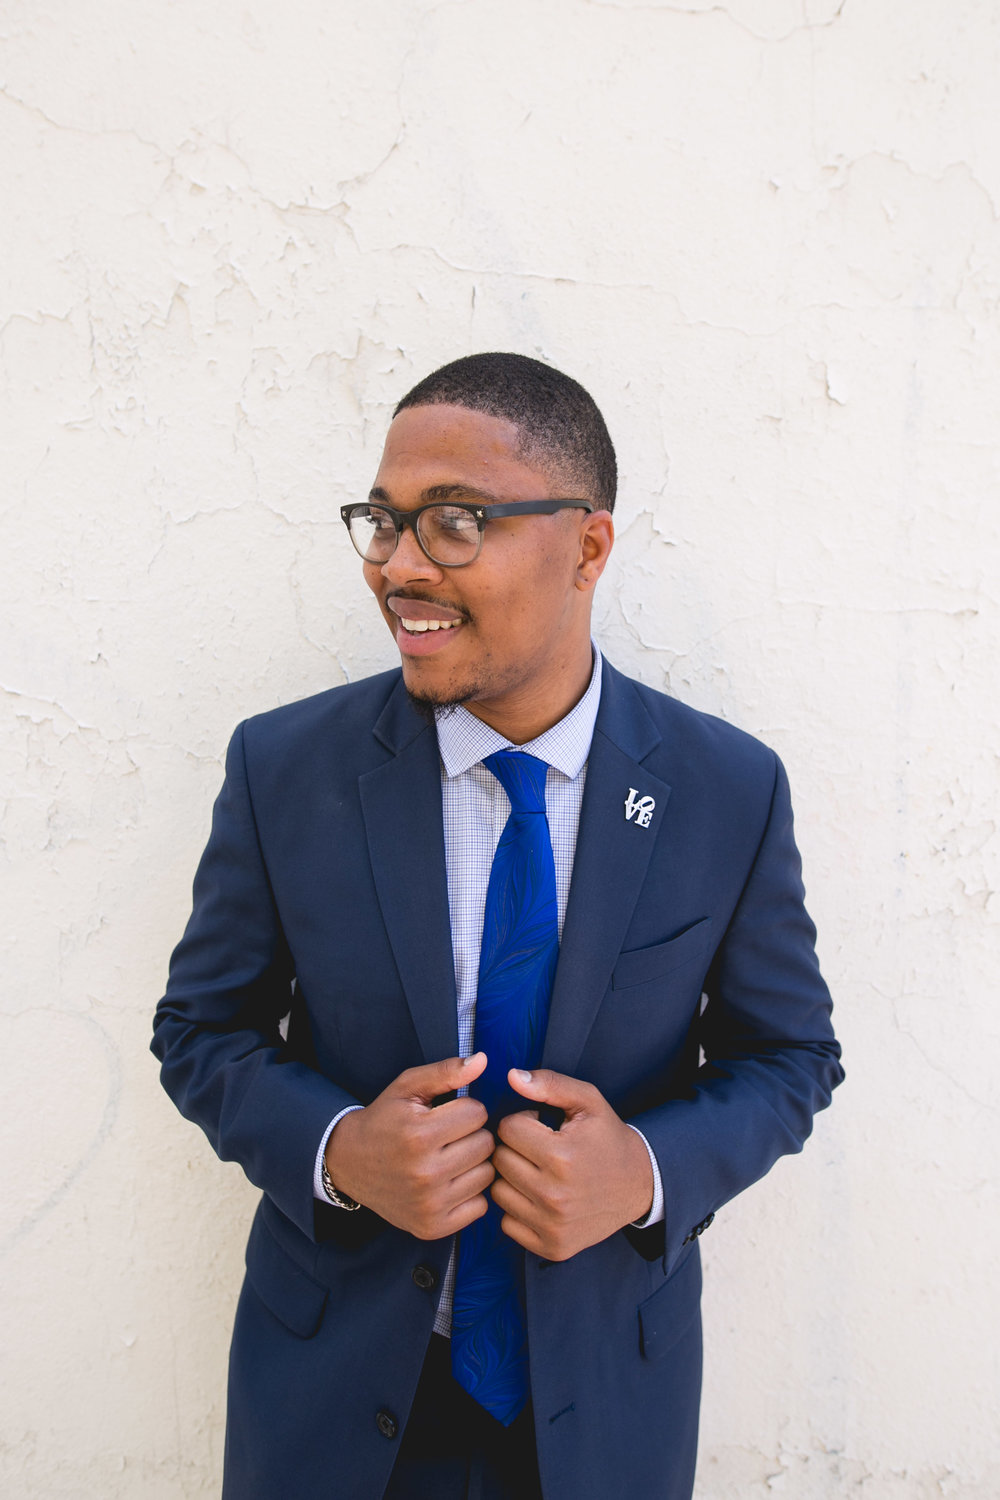 LGBTQ Democratic Party Malcolm Kenyatta 2